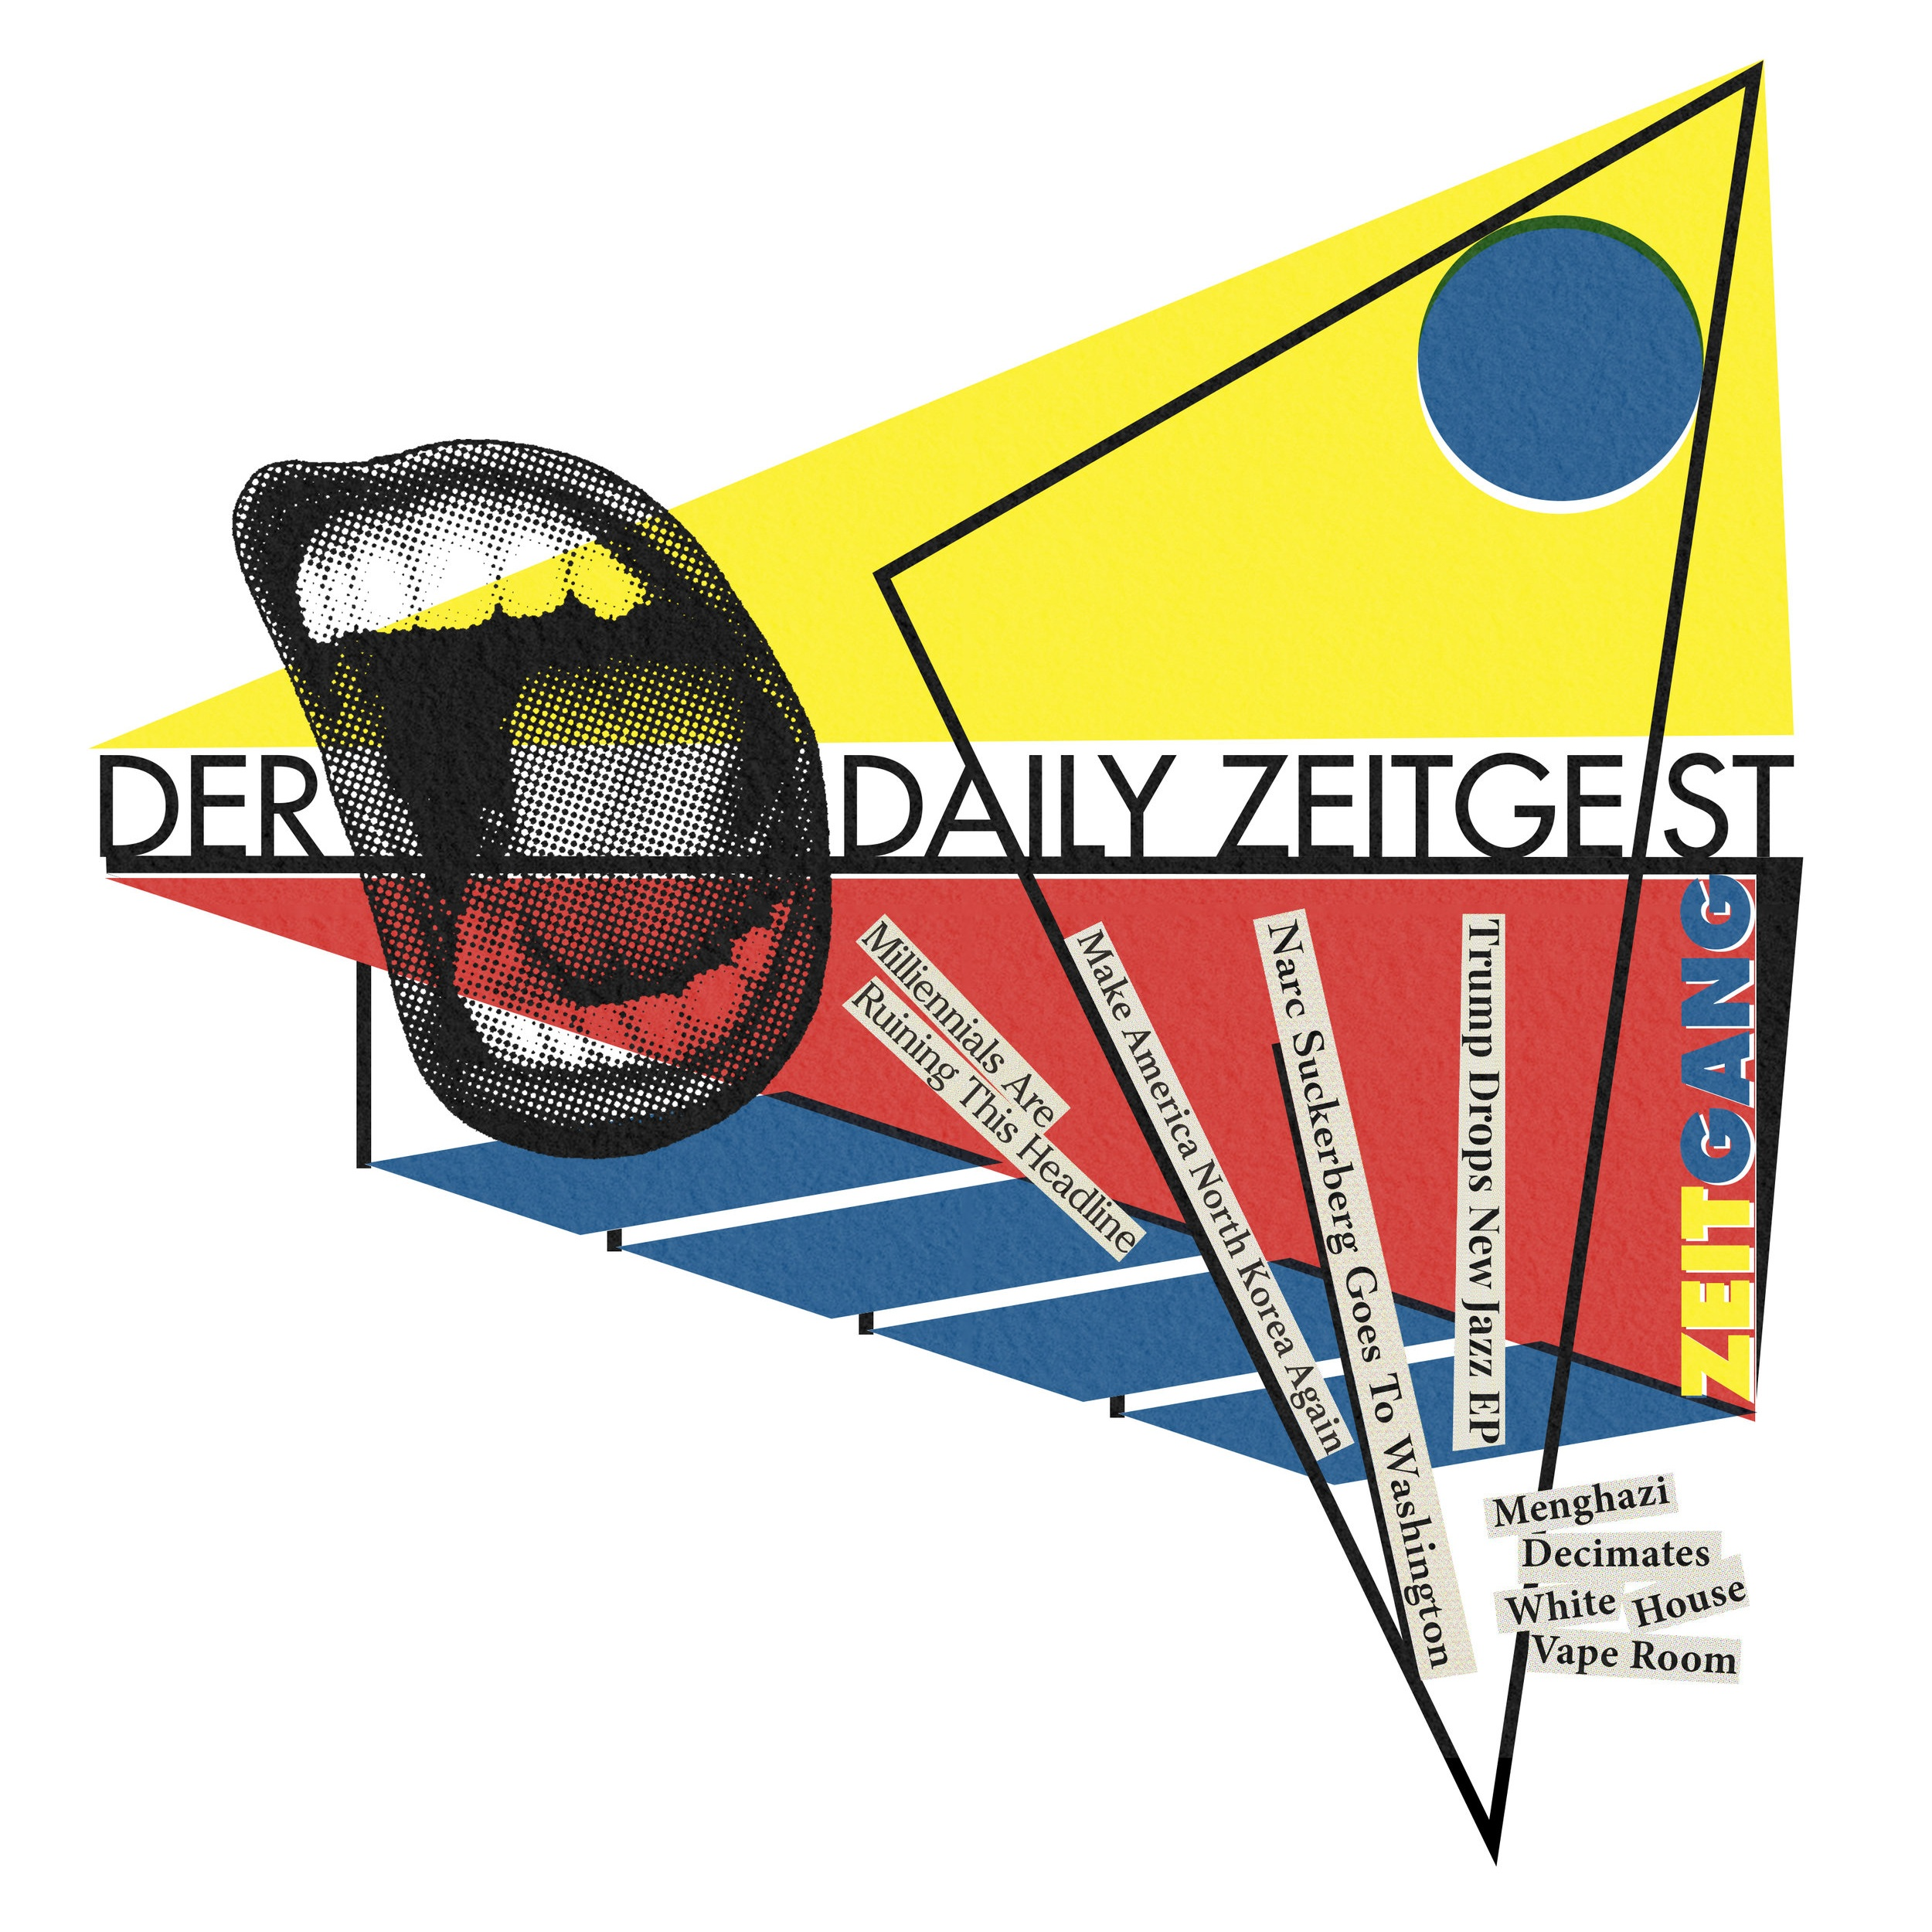 Typographic t-shirt design for The Daily Zeitgeist